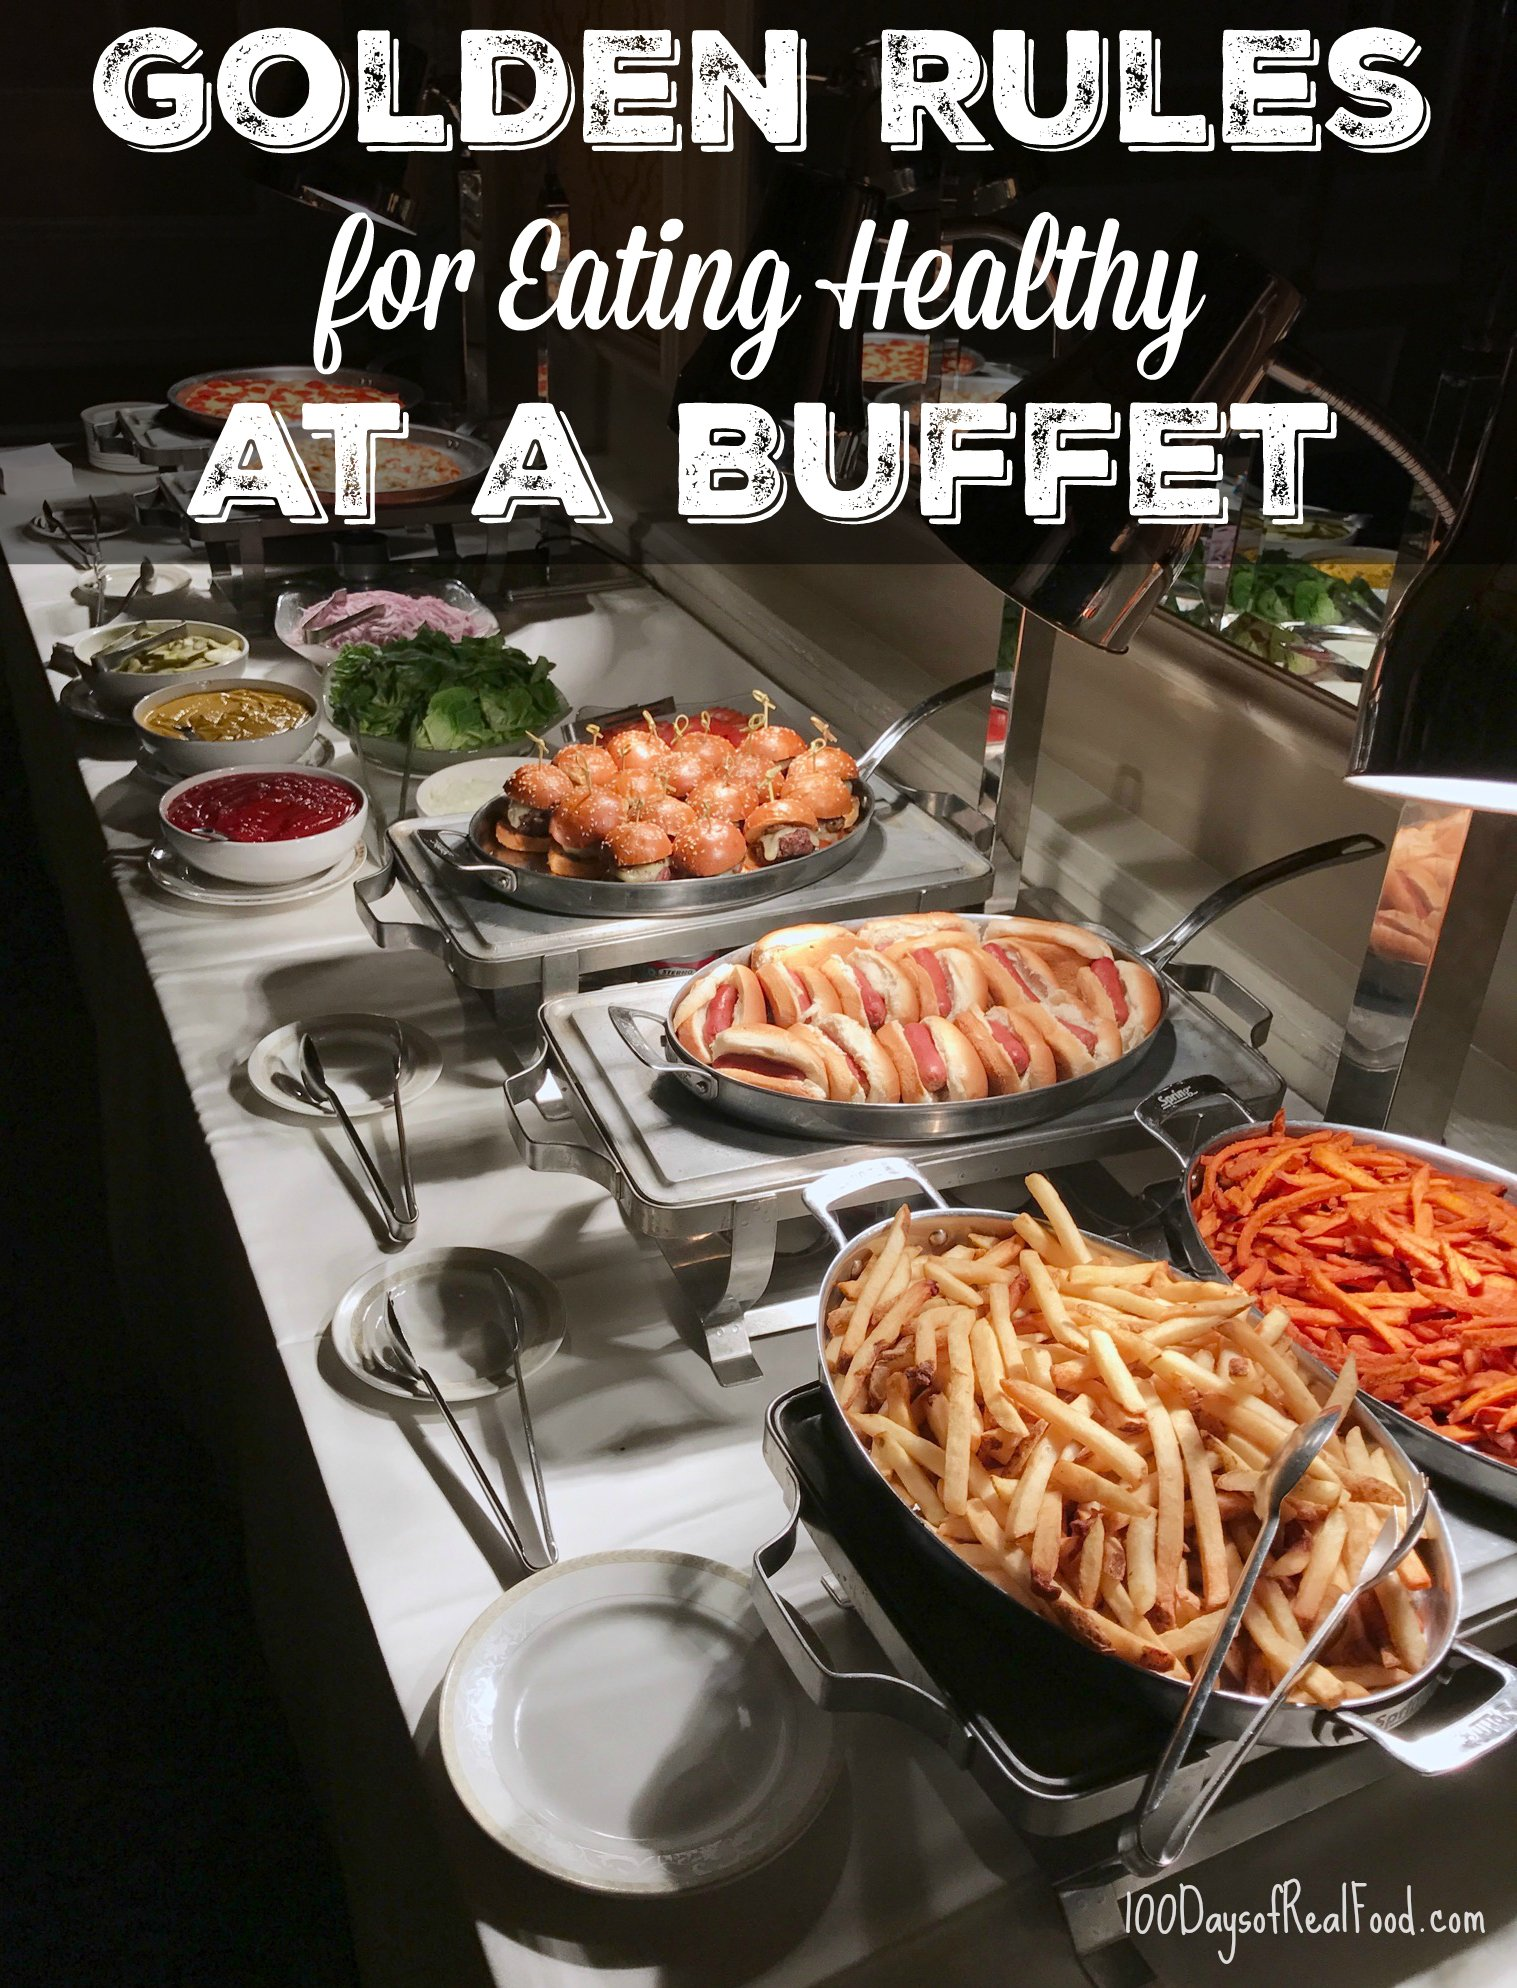 Golden Rules for Healthy Eating at a Buffet on 100 Days of Real Food